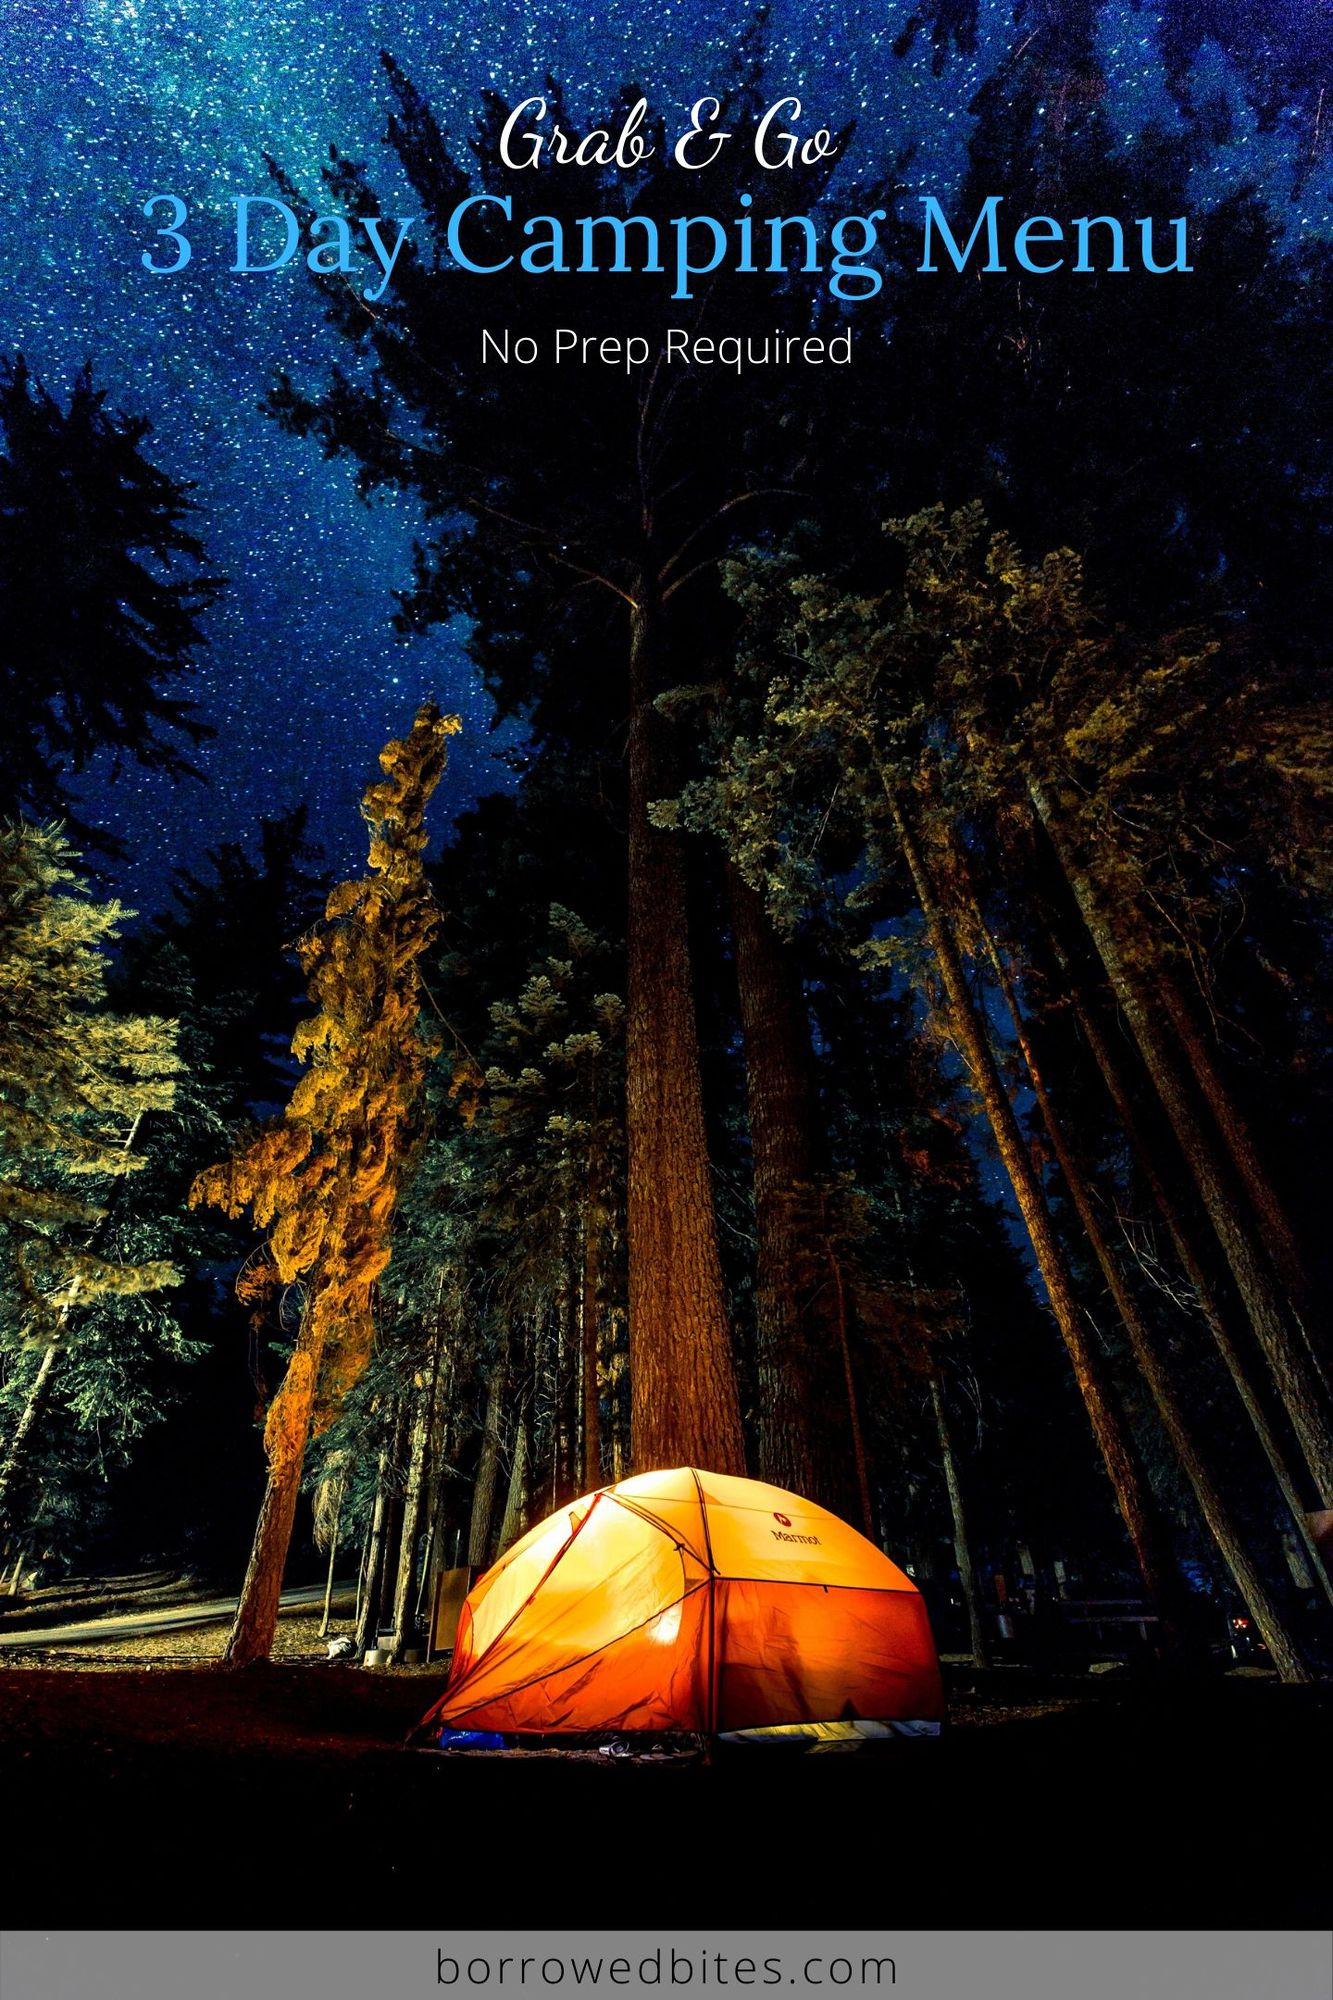 Tent in the forest at night.